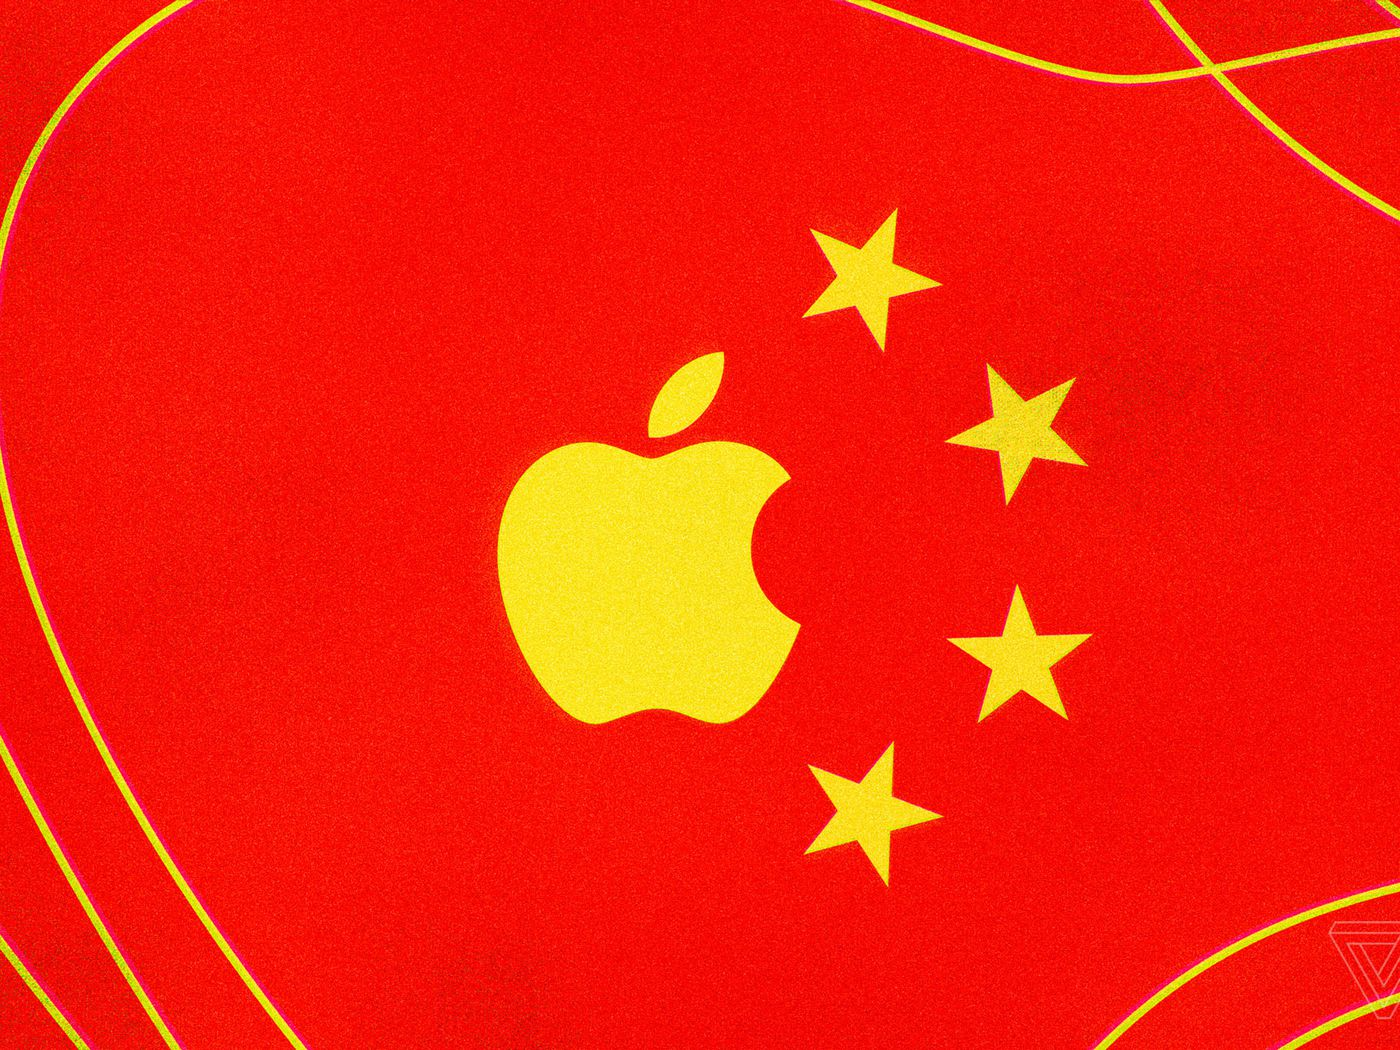 Apple S Tencent Privacy Controversy Is More Complicated Than It Looks The Verge